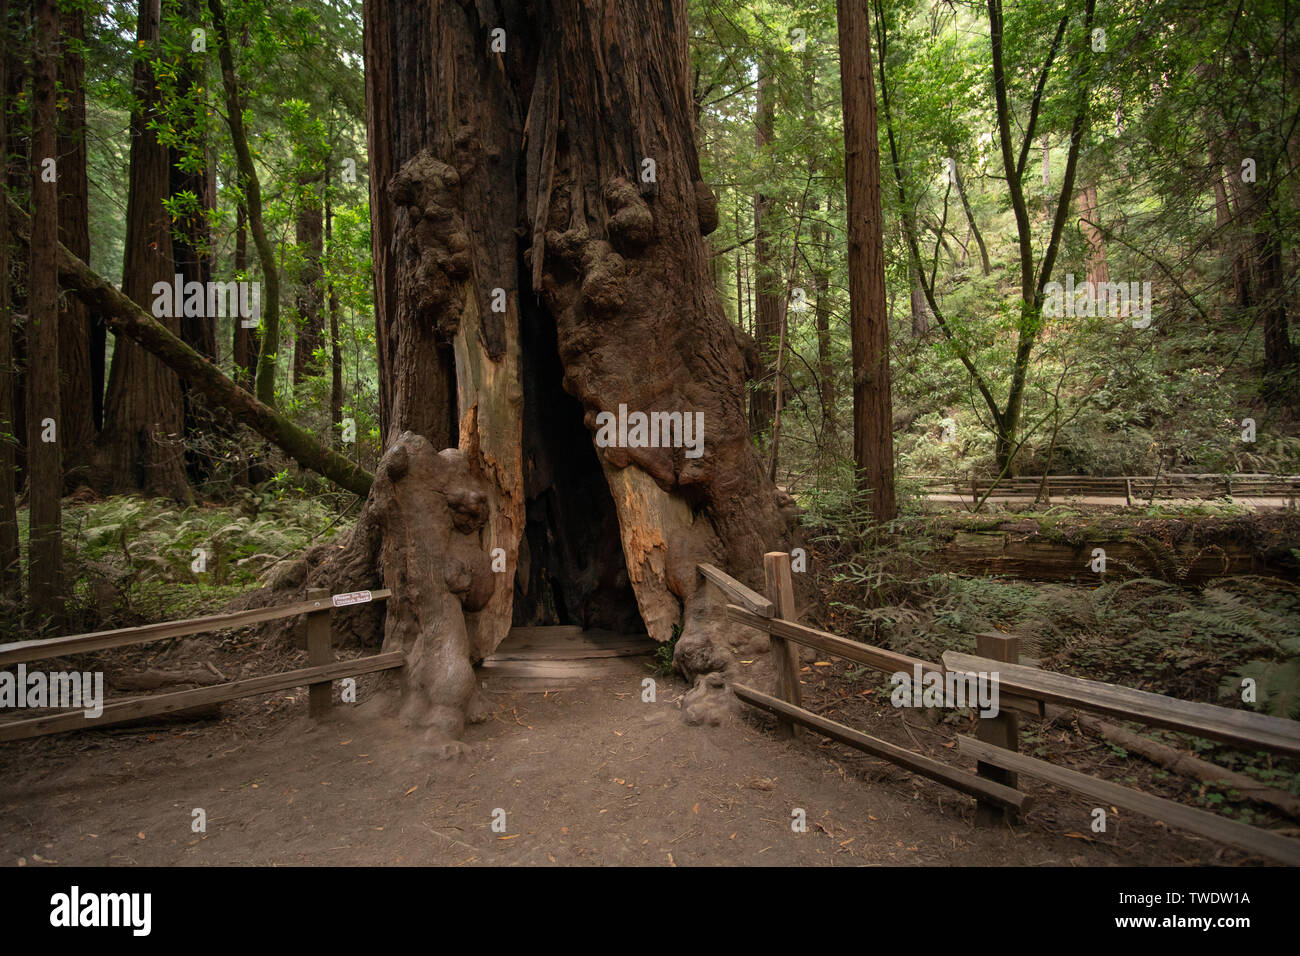 A large redwood tree in Muir Woods showing the hollow insides. - Stock Image